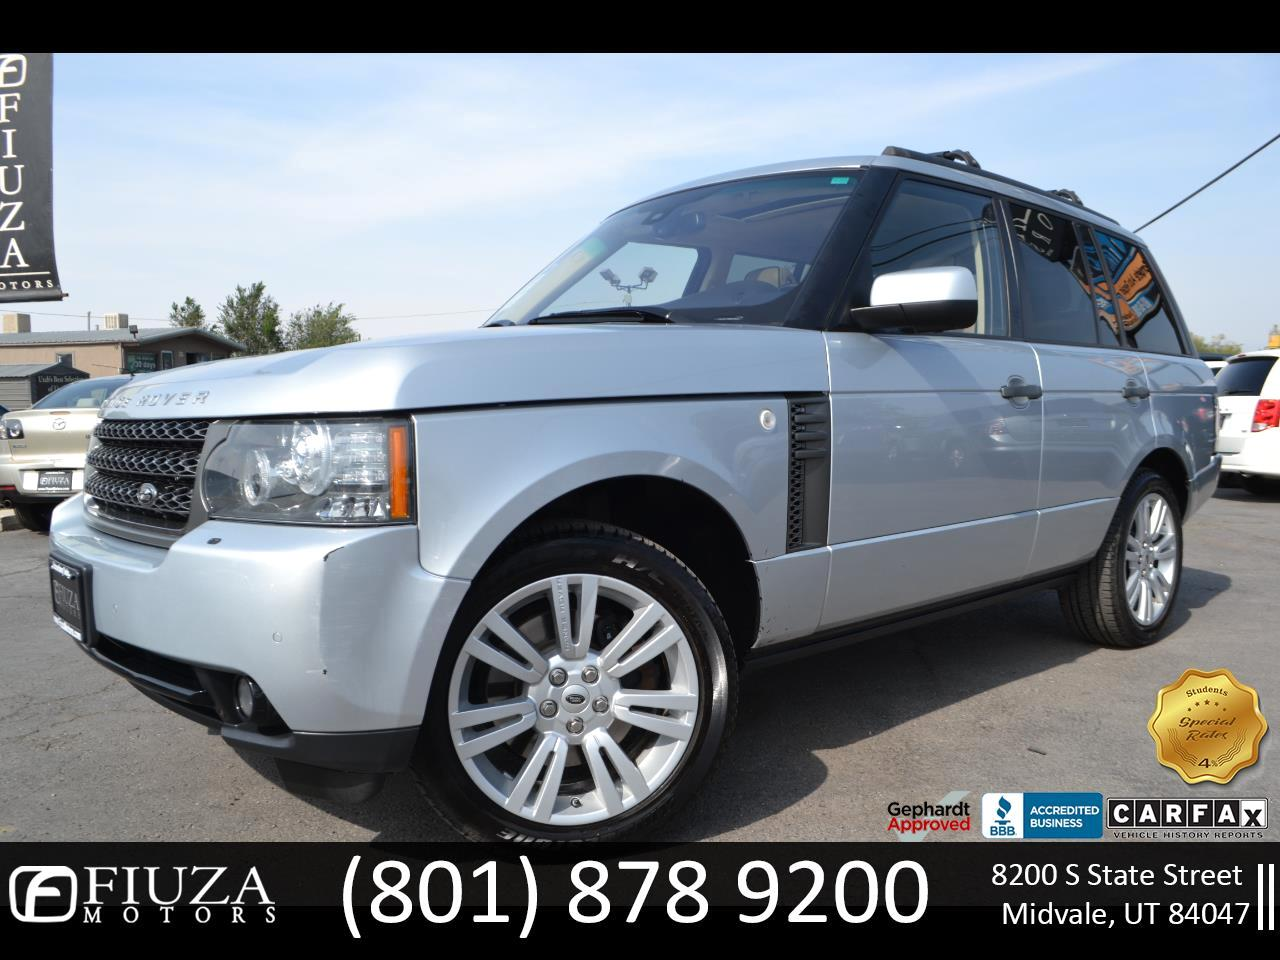 Land Rover Range Rover 4WD 4dr HSE LUX 2011